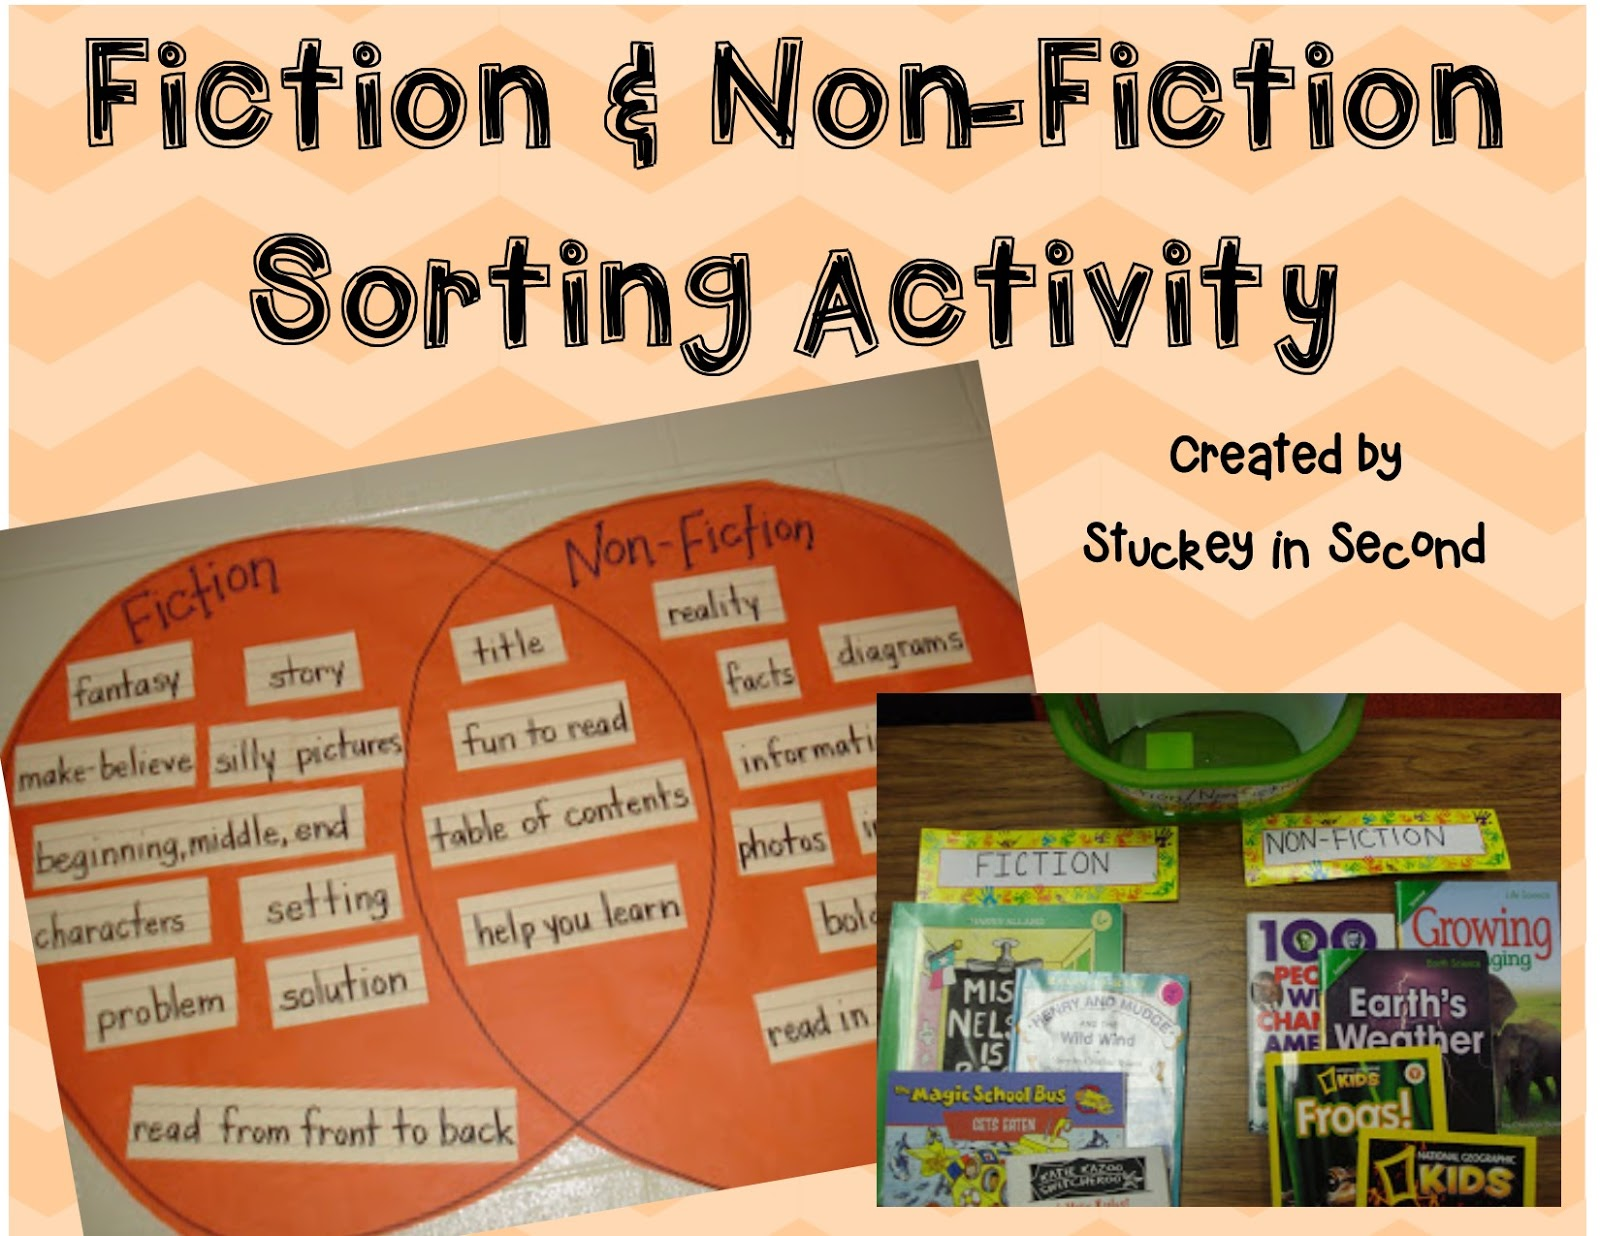 Stuckey in Second: Fiction vs. Non-Fiction